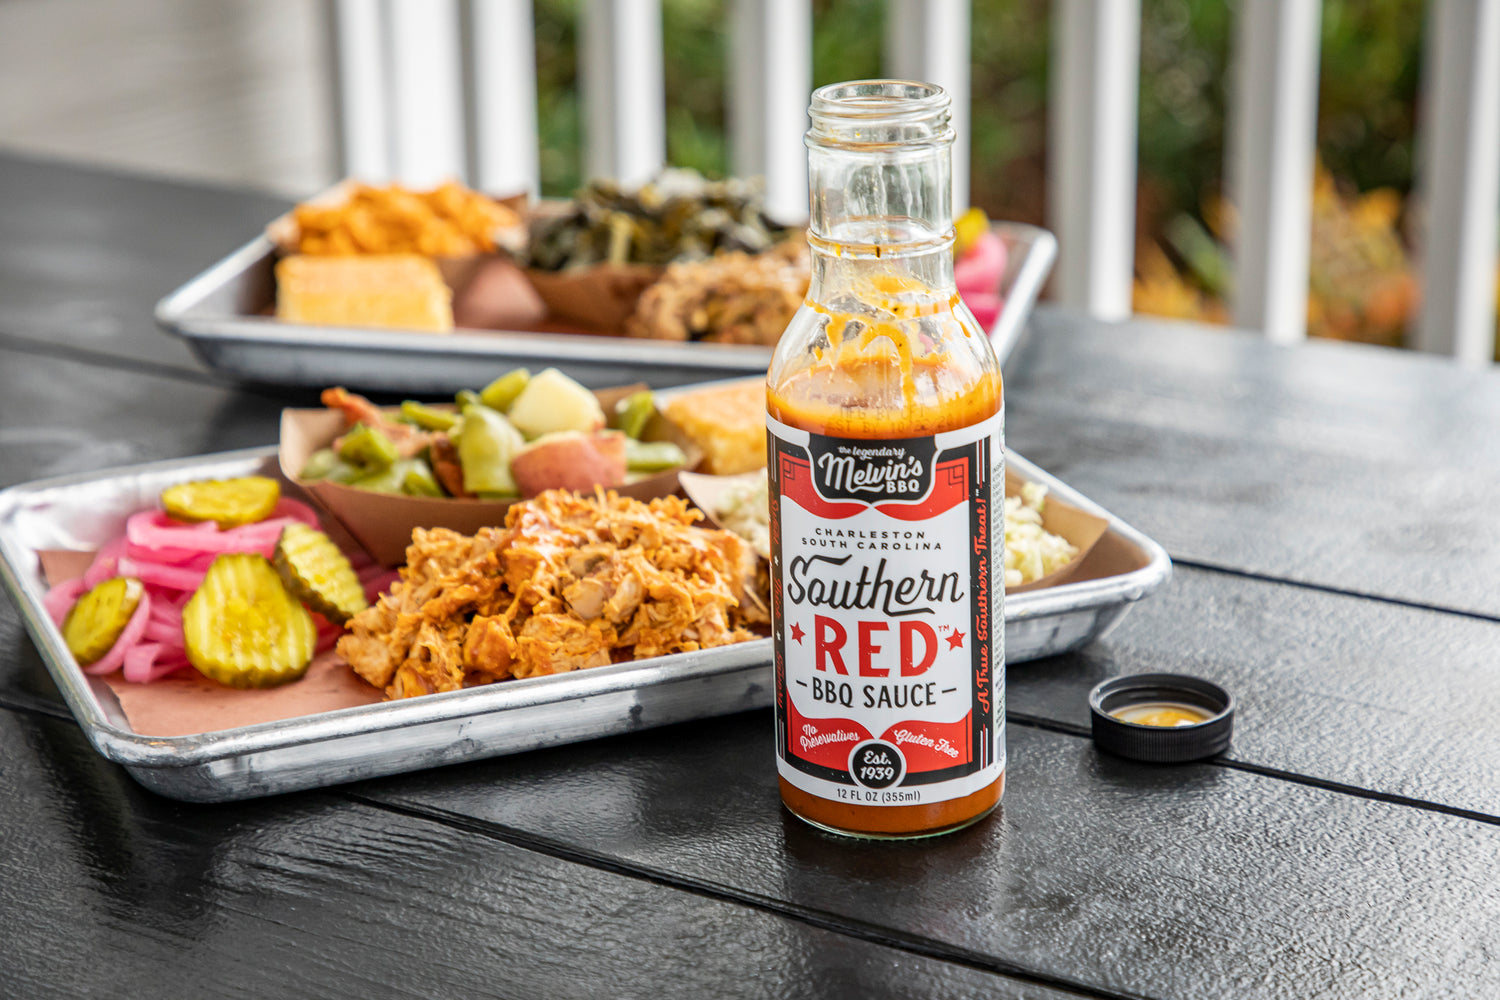 Melvin's BBQ Southern Red